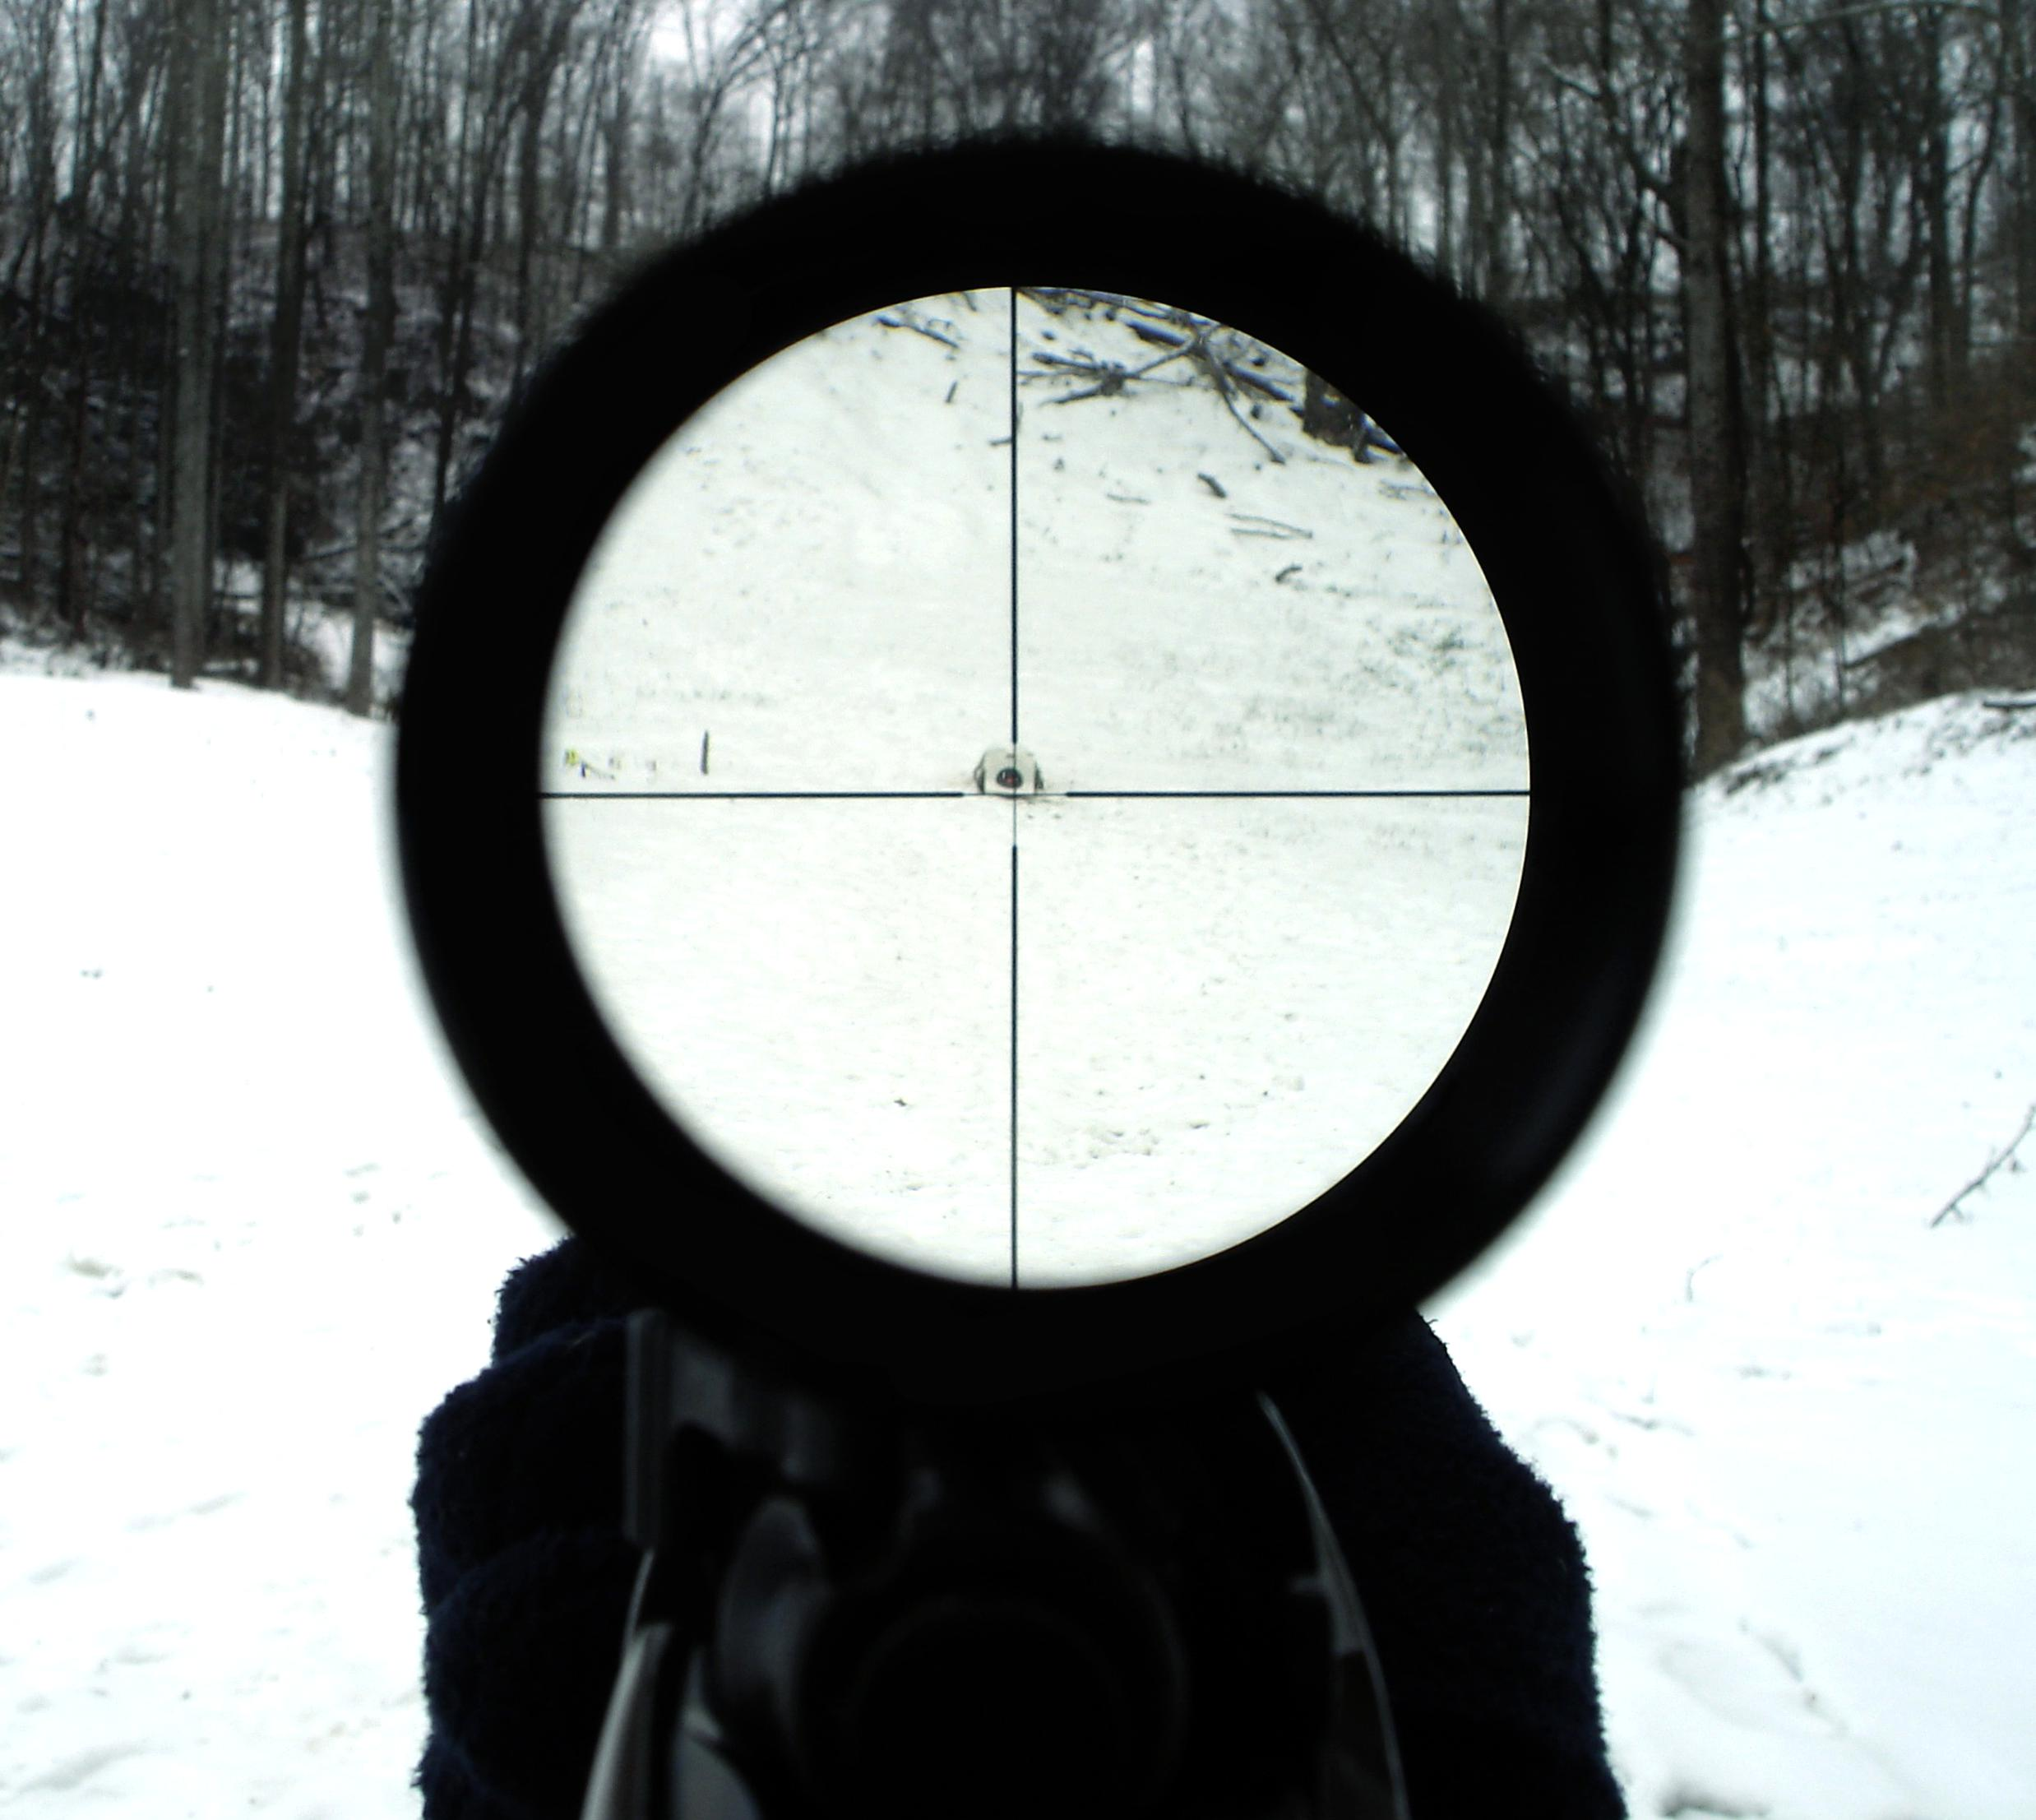 telescopic sights for sale